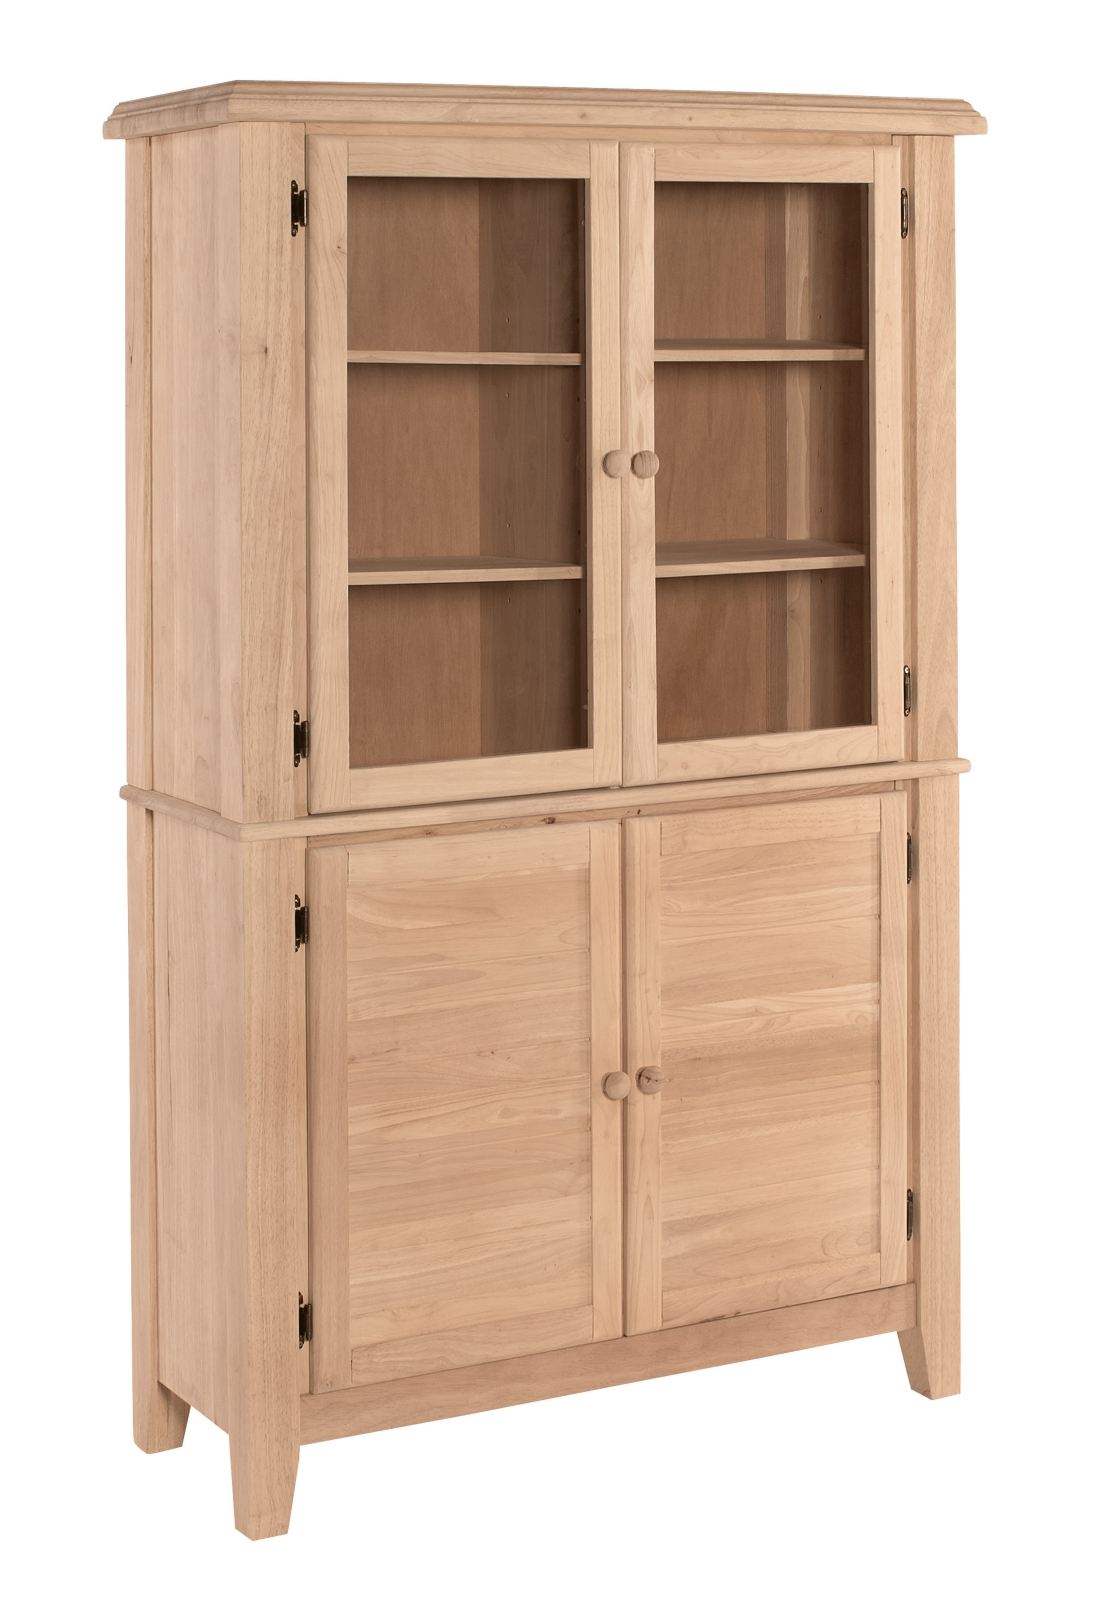 some of the most beautiful types of unfinished furniture that you can get are unfinished pine furniture and unfinished oak furniture